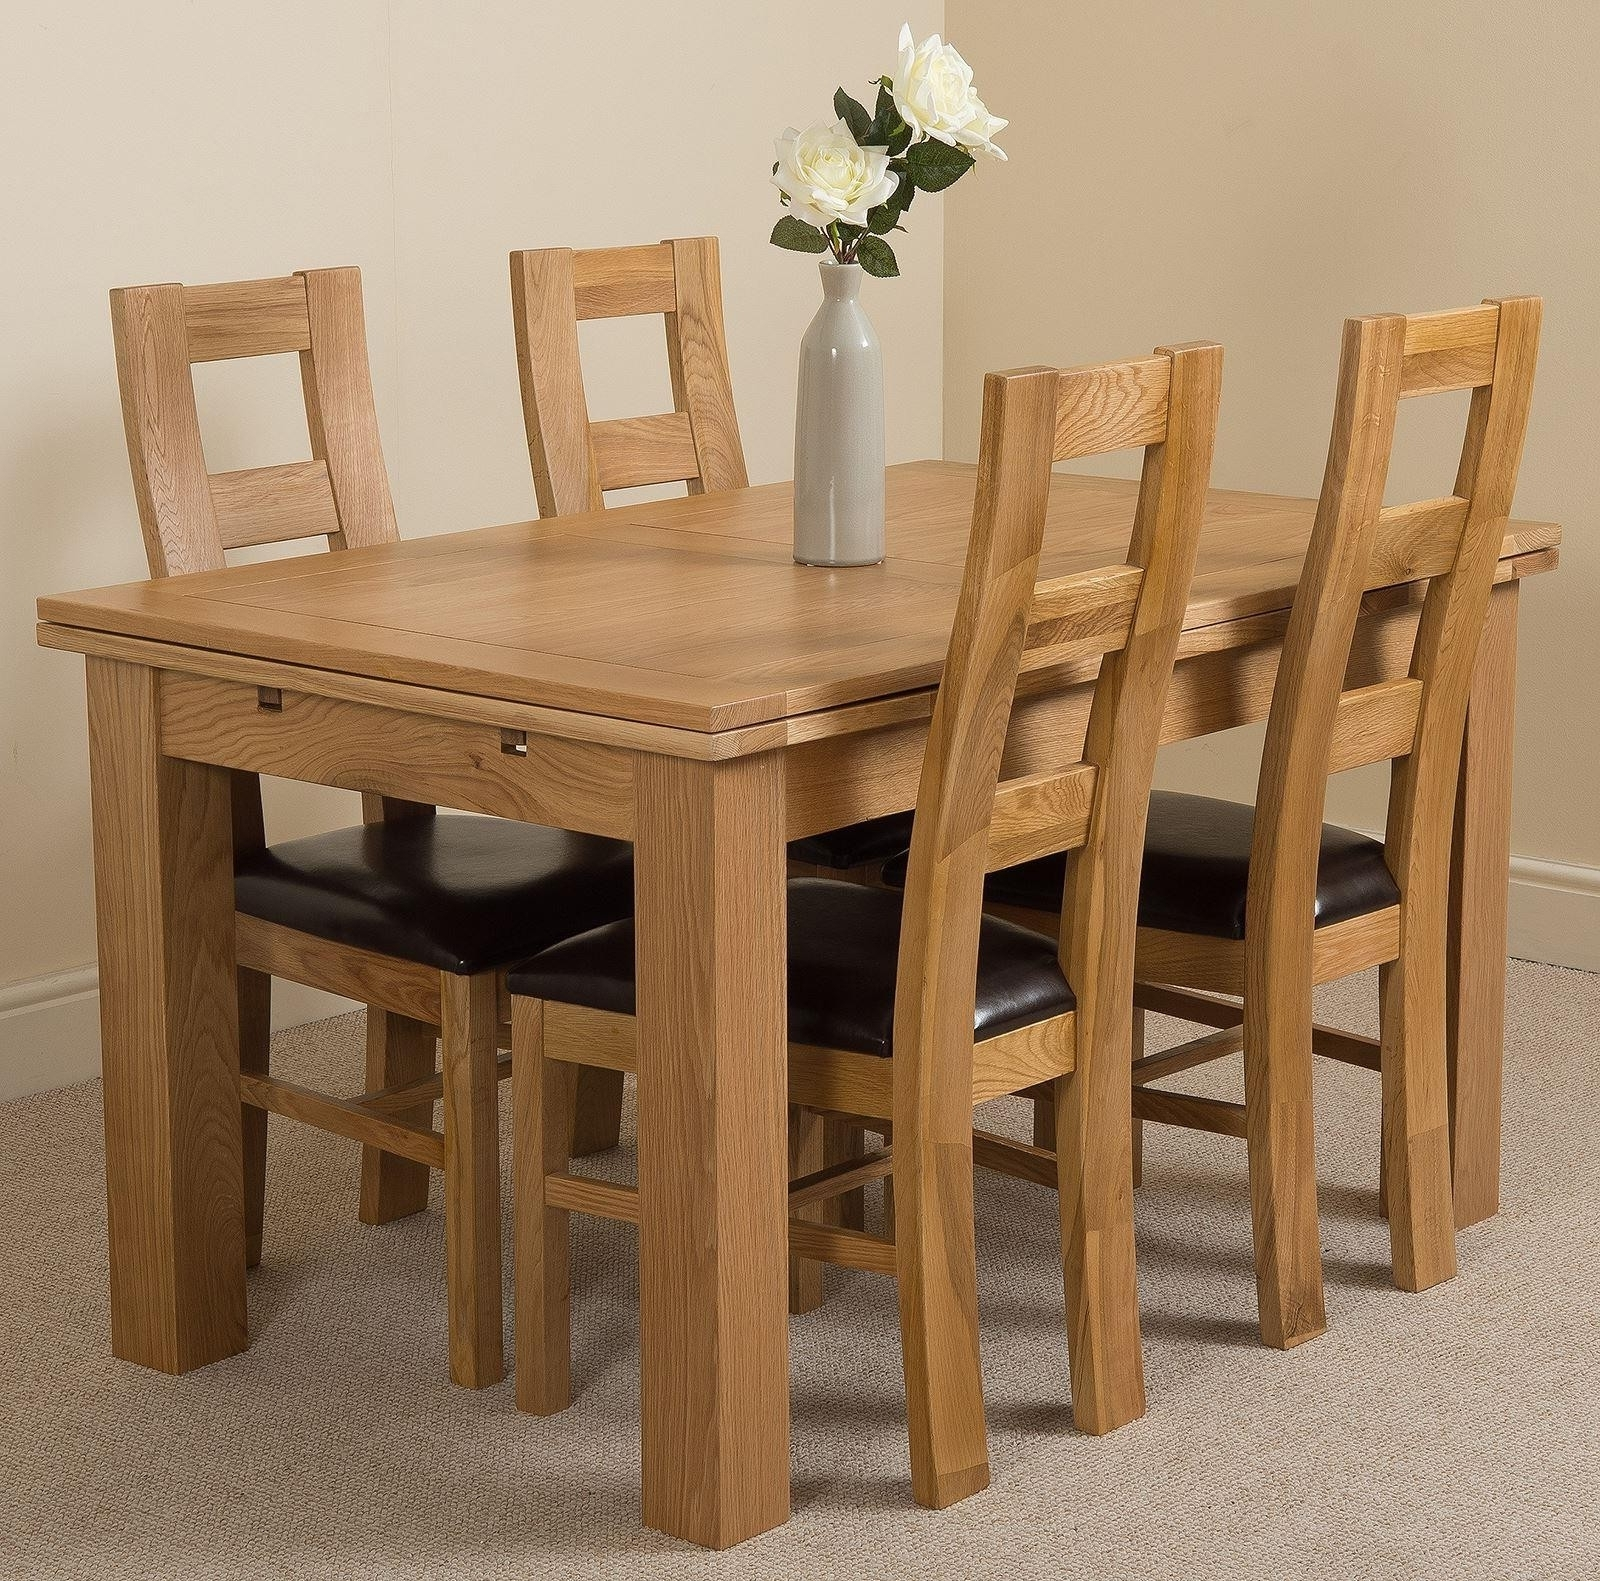 Oak Furniture King Pertaining To Oak Extending Dining Tables And 4 Chairs (View 18 of 25)